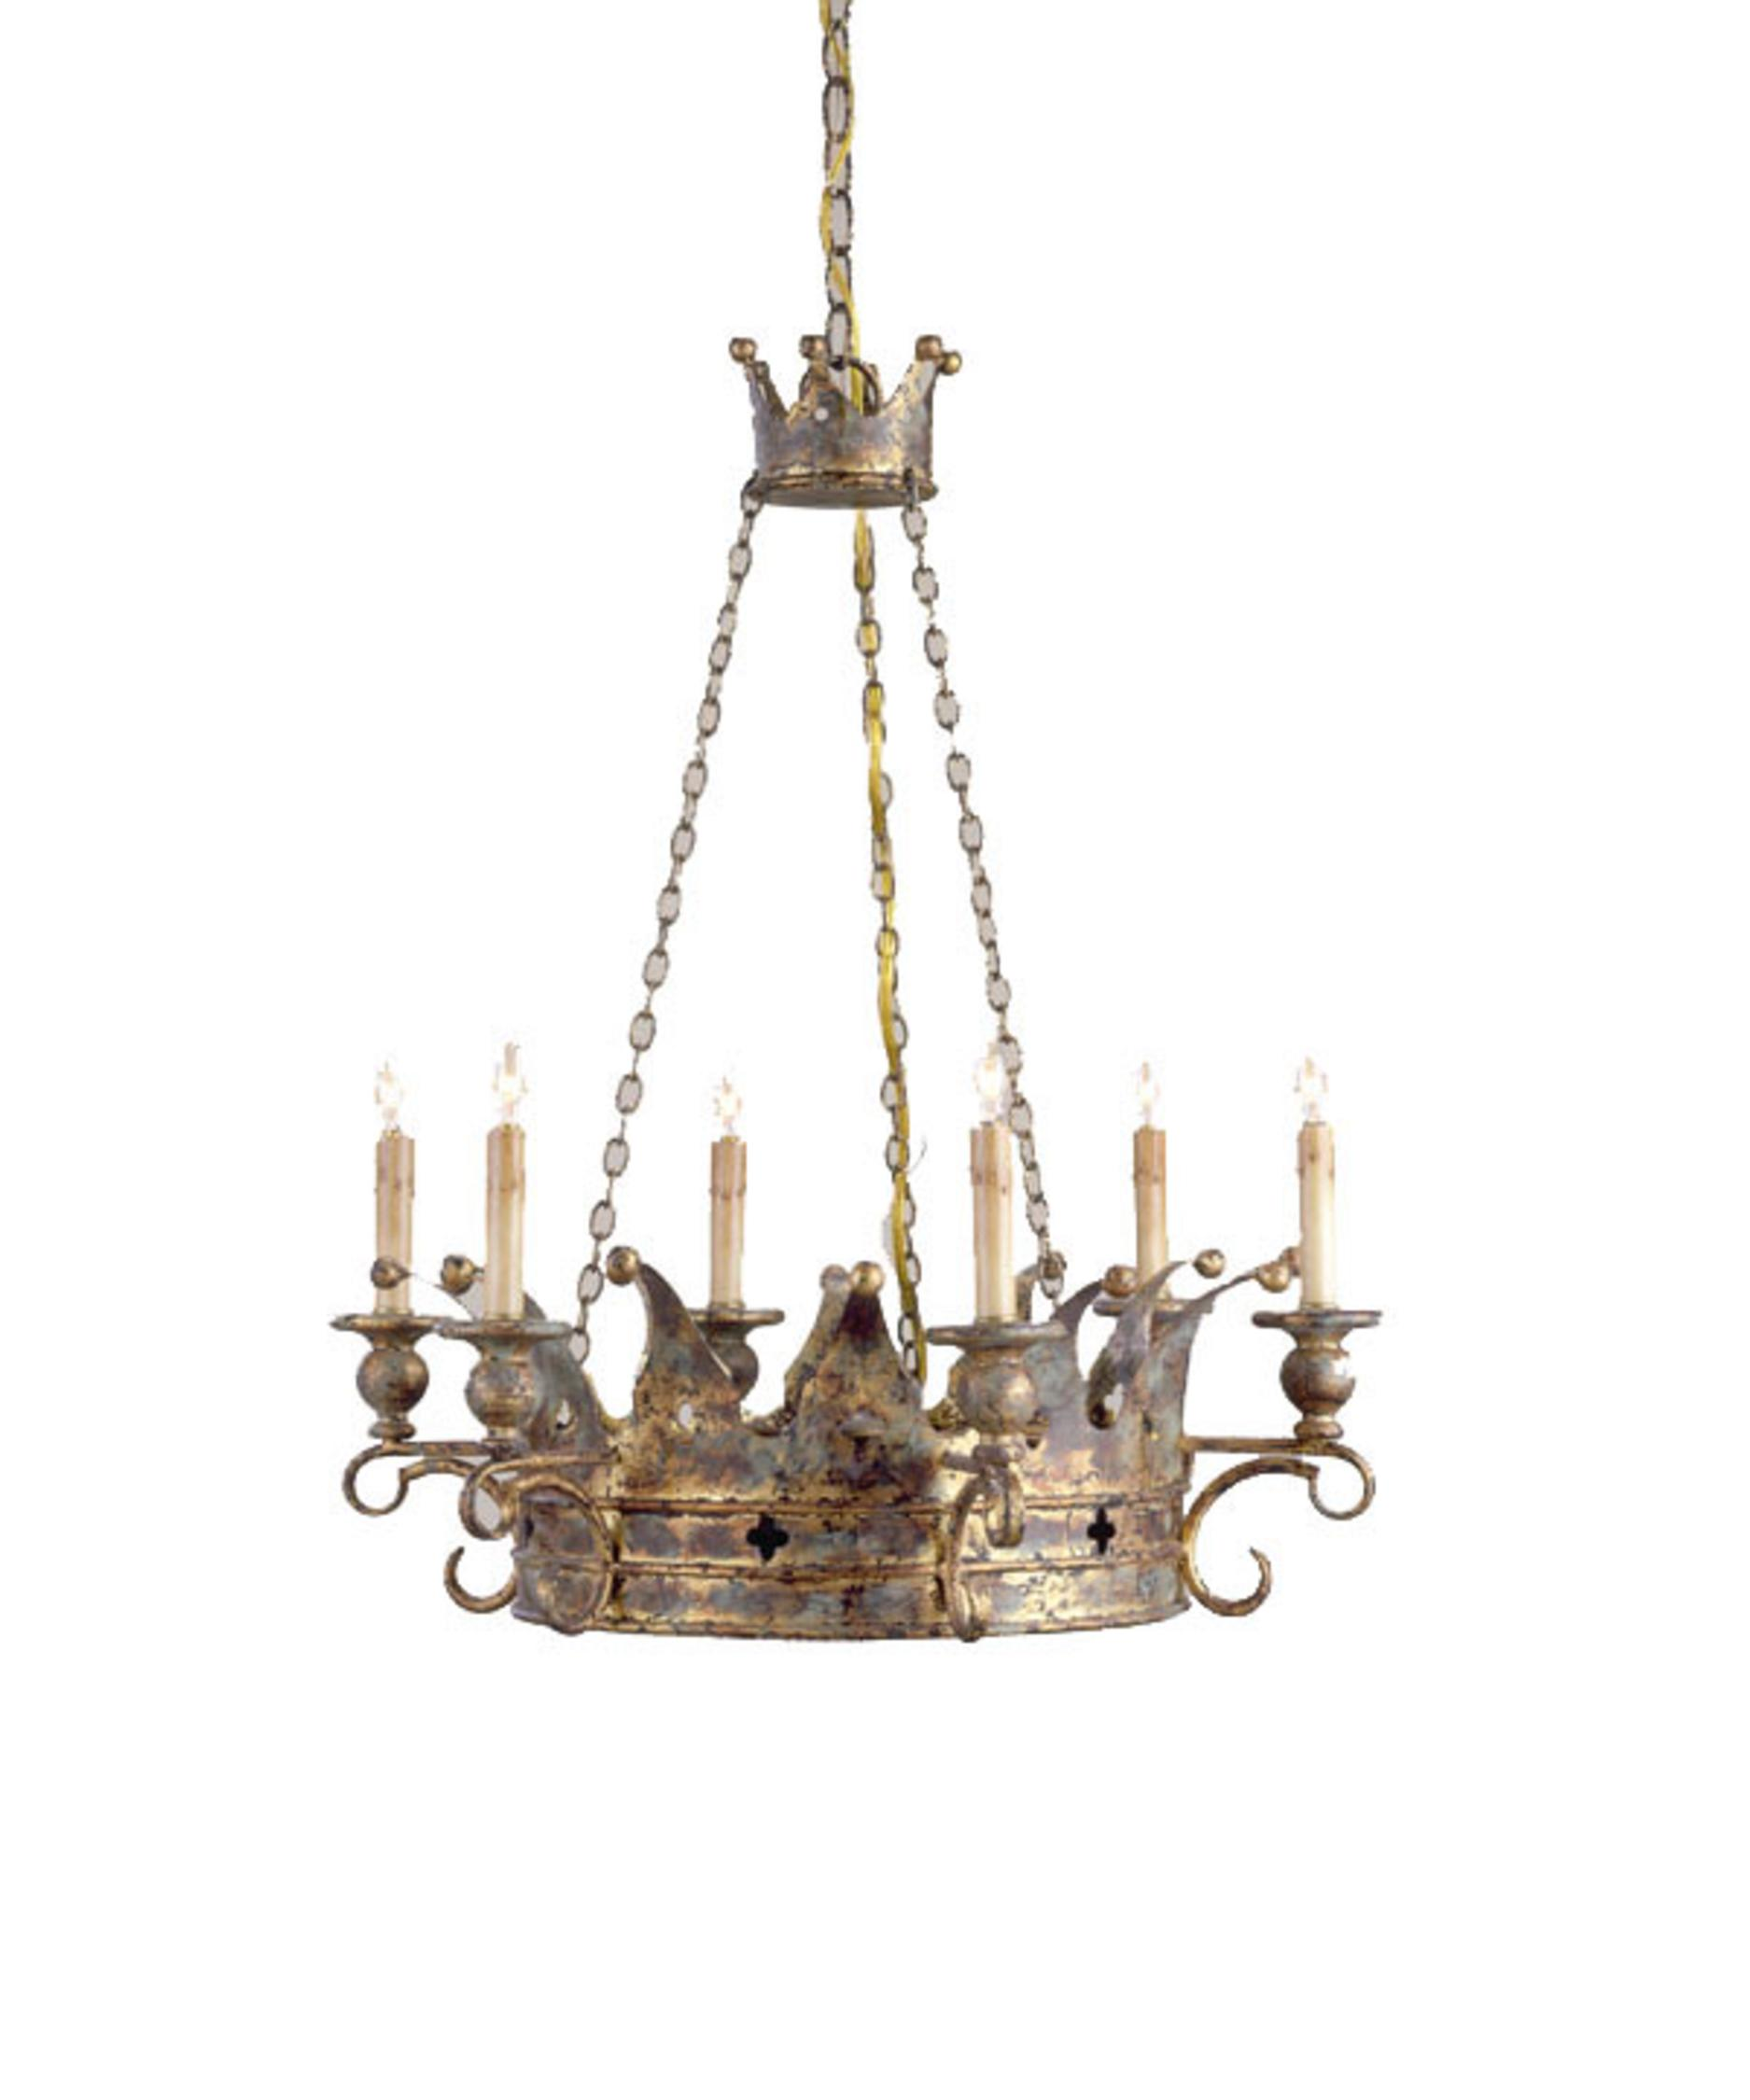 Currey and Company Crown 24 Inch Wide 6 Light Chandelier | Capitol Lighting  1-800lighting.com